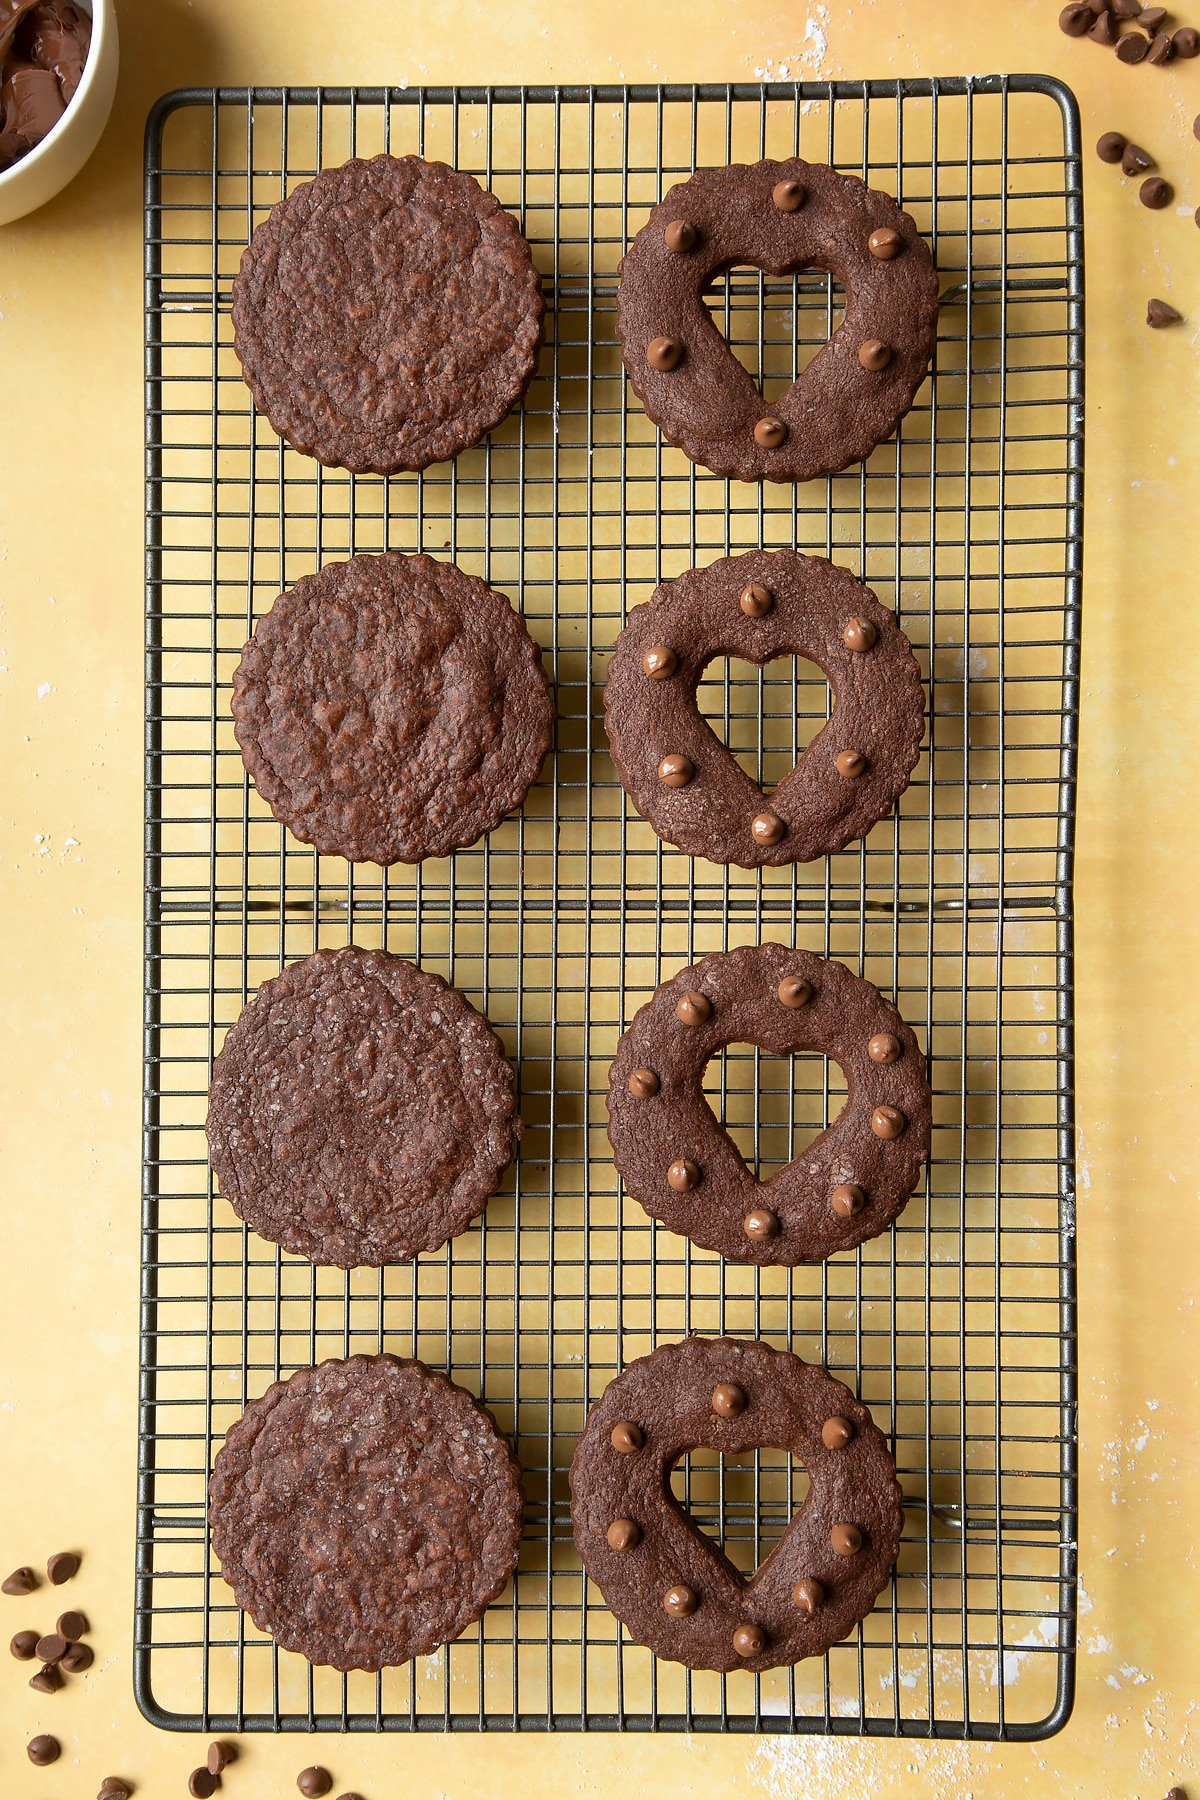 Chocolate sandwich cookies on a cooling rack ready to fill assemble.